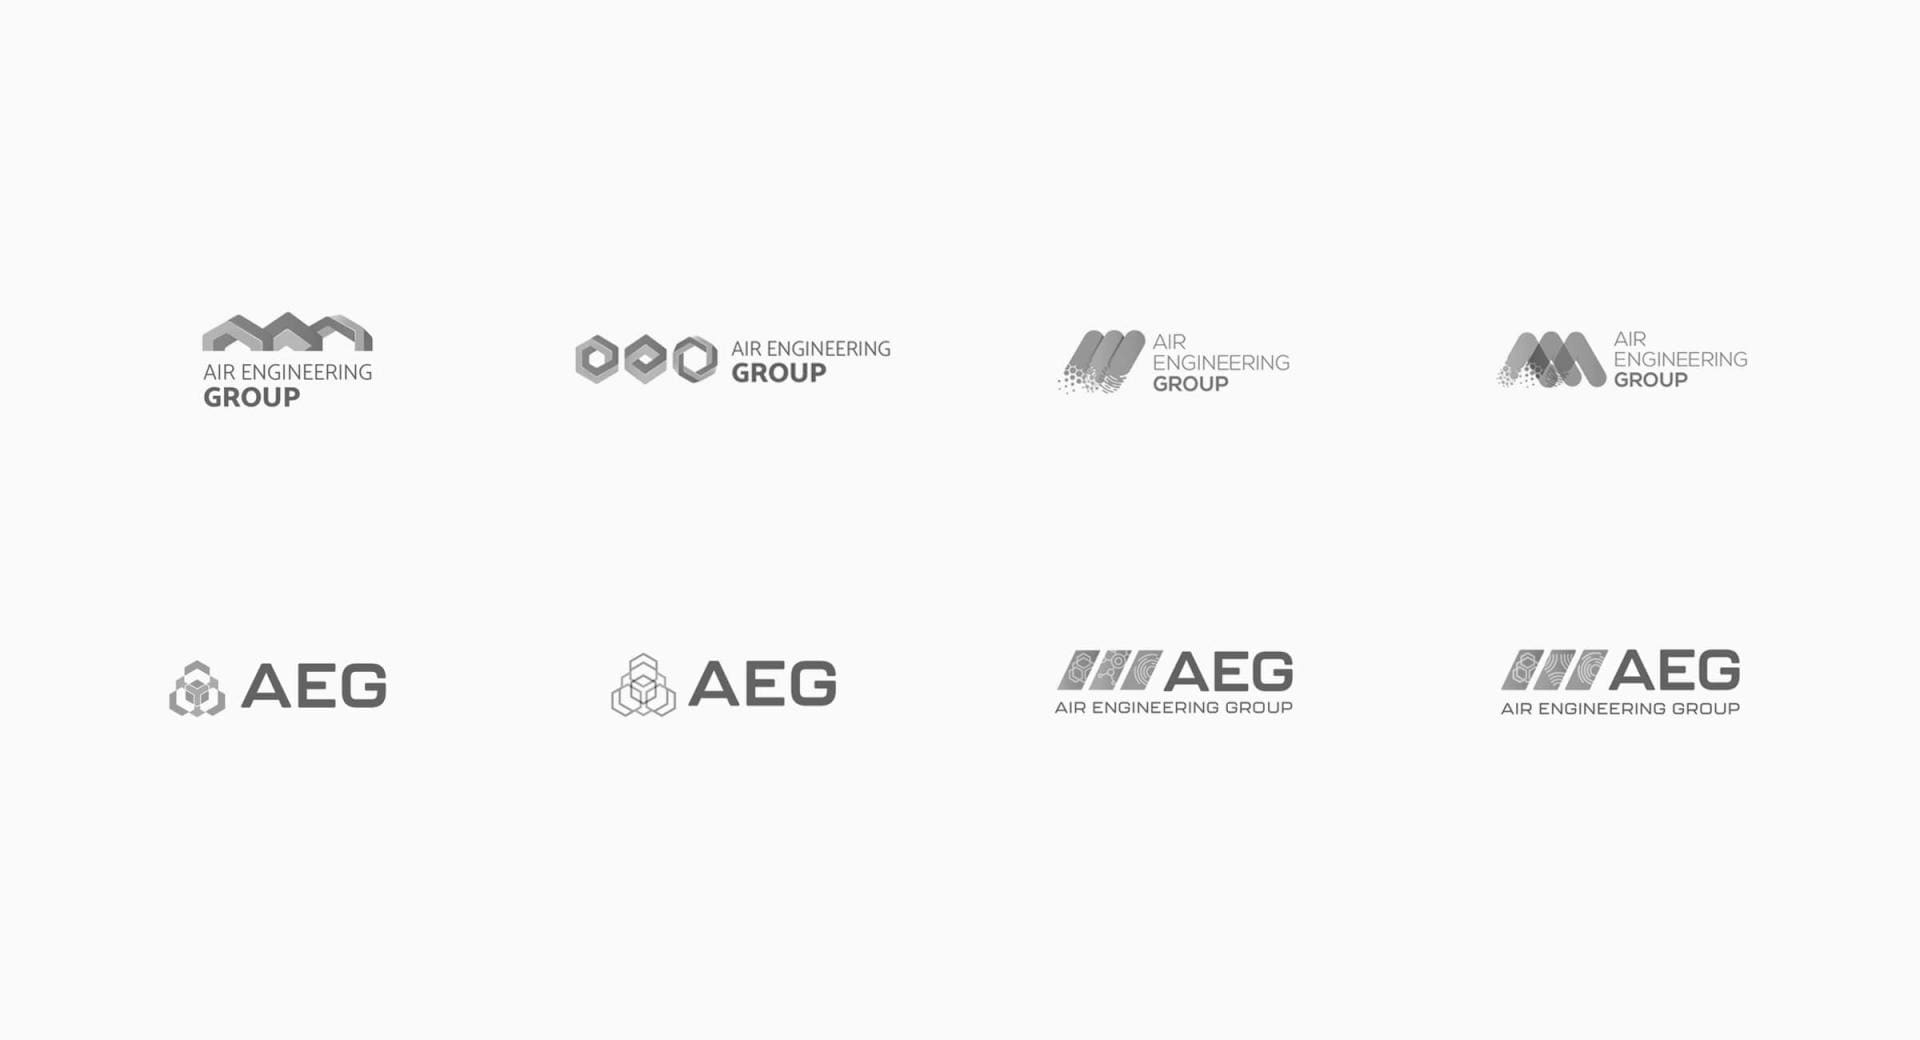 Air Engineering Group Rebrand Concepts